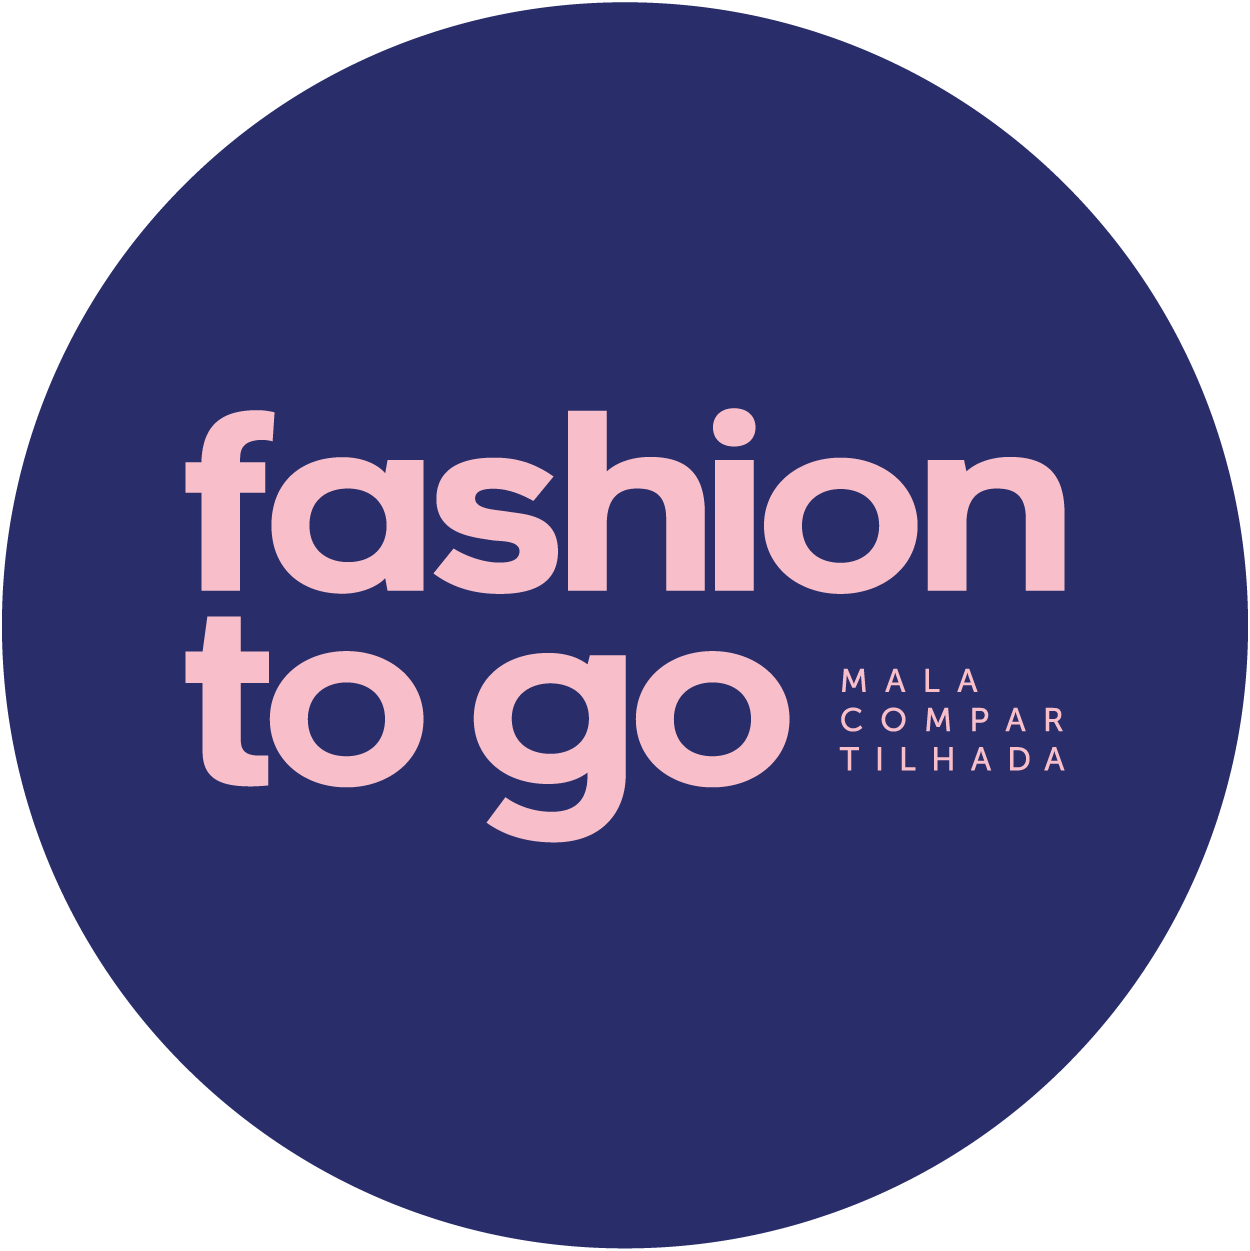 Fashion To Go